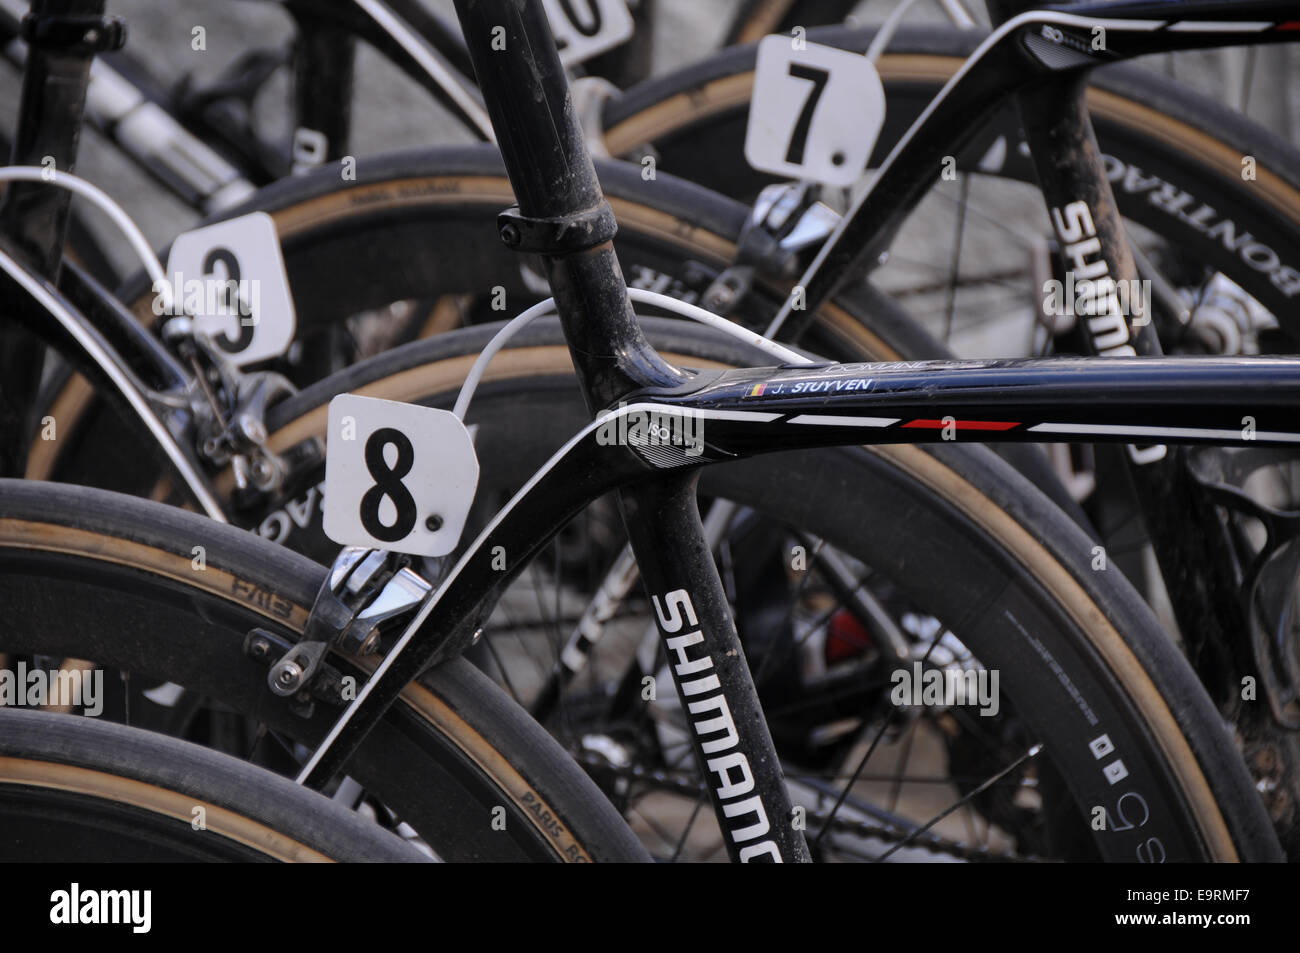 Team Trek race bikes ready for a workover after the Paris Roubaix 2014 spring cobble classic cycle race - Stock Image